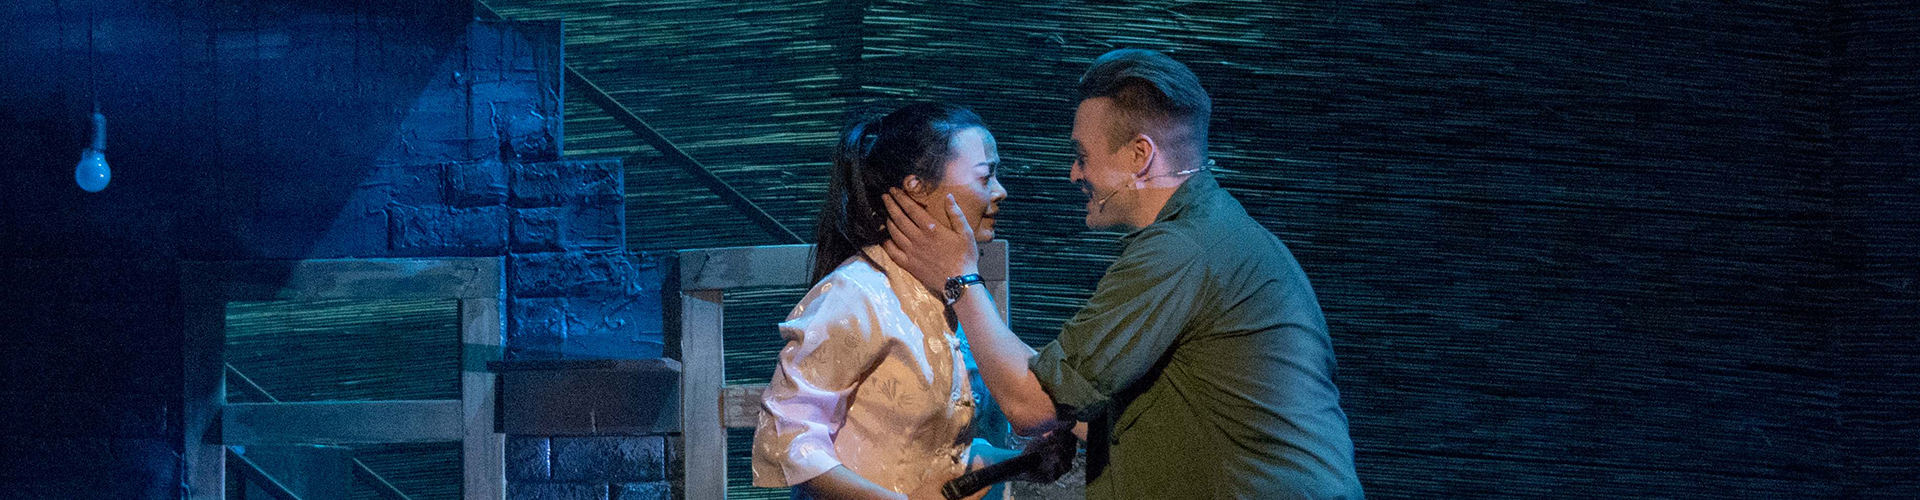 MISS SAIGON 2017